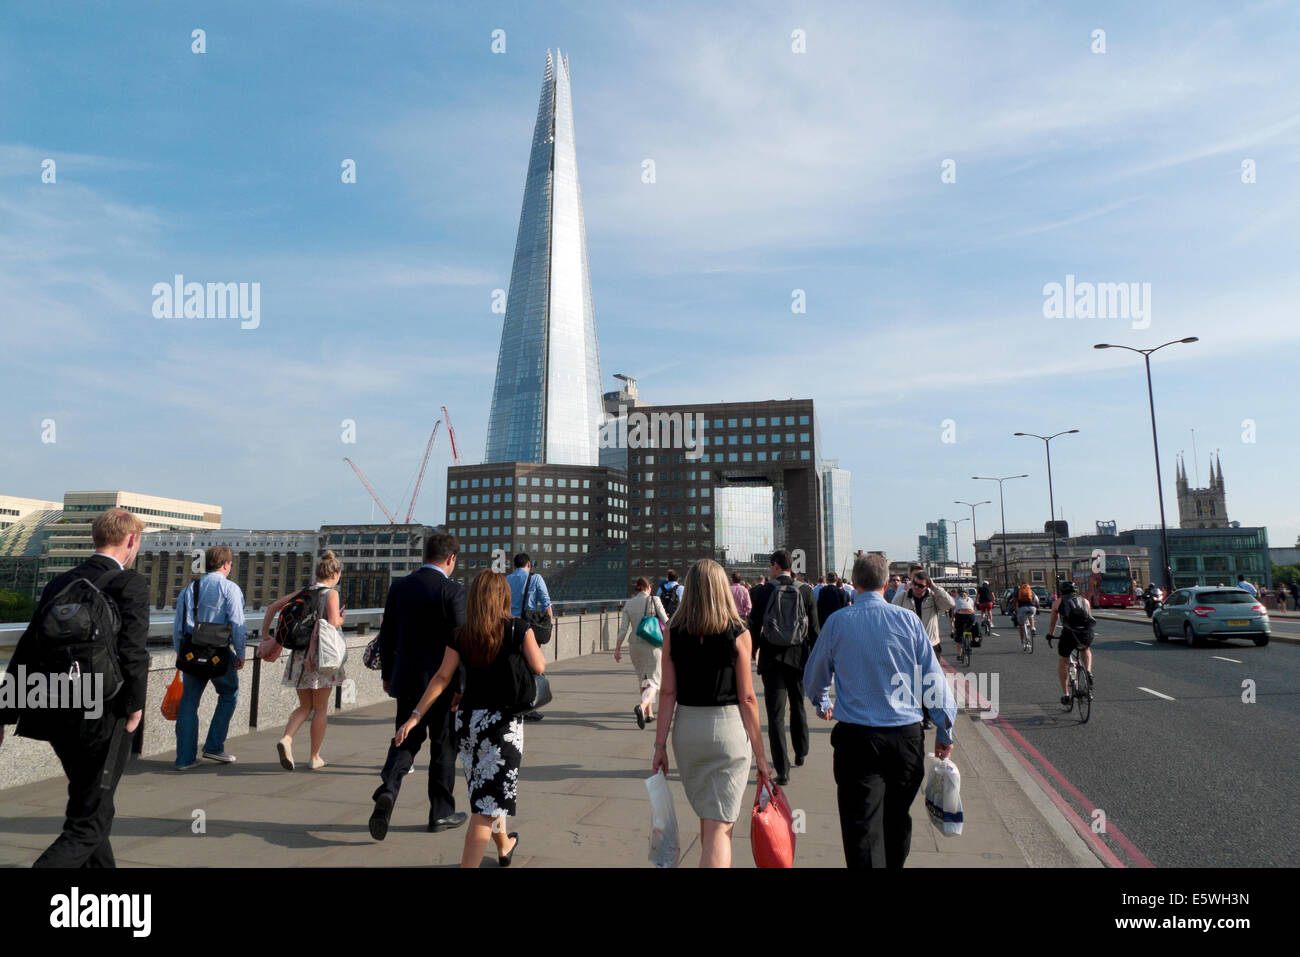 City of London office workers  crossing London Bridge at rush hour after work in summer with a view of the Shard - Stock Image